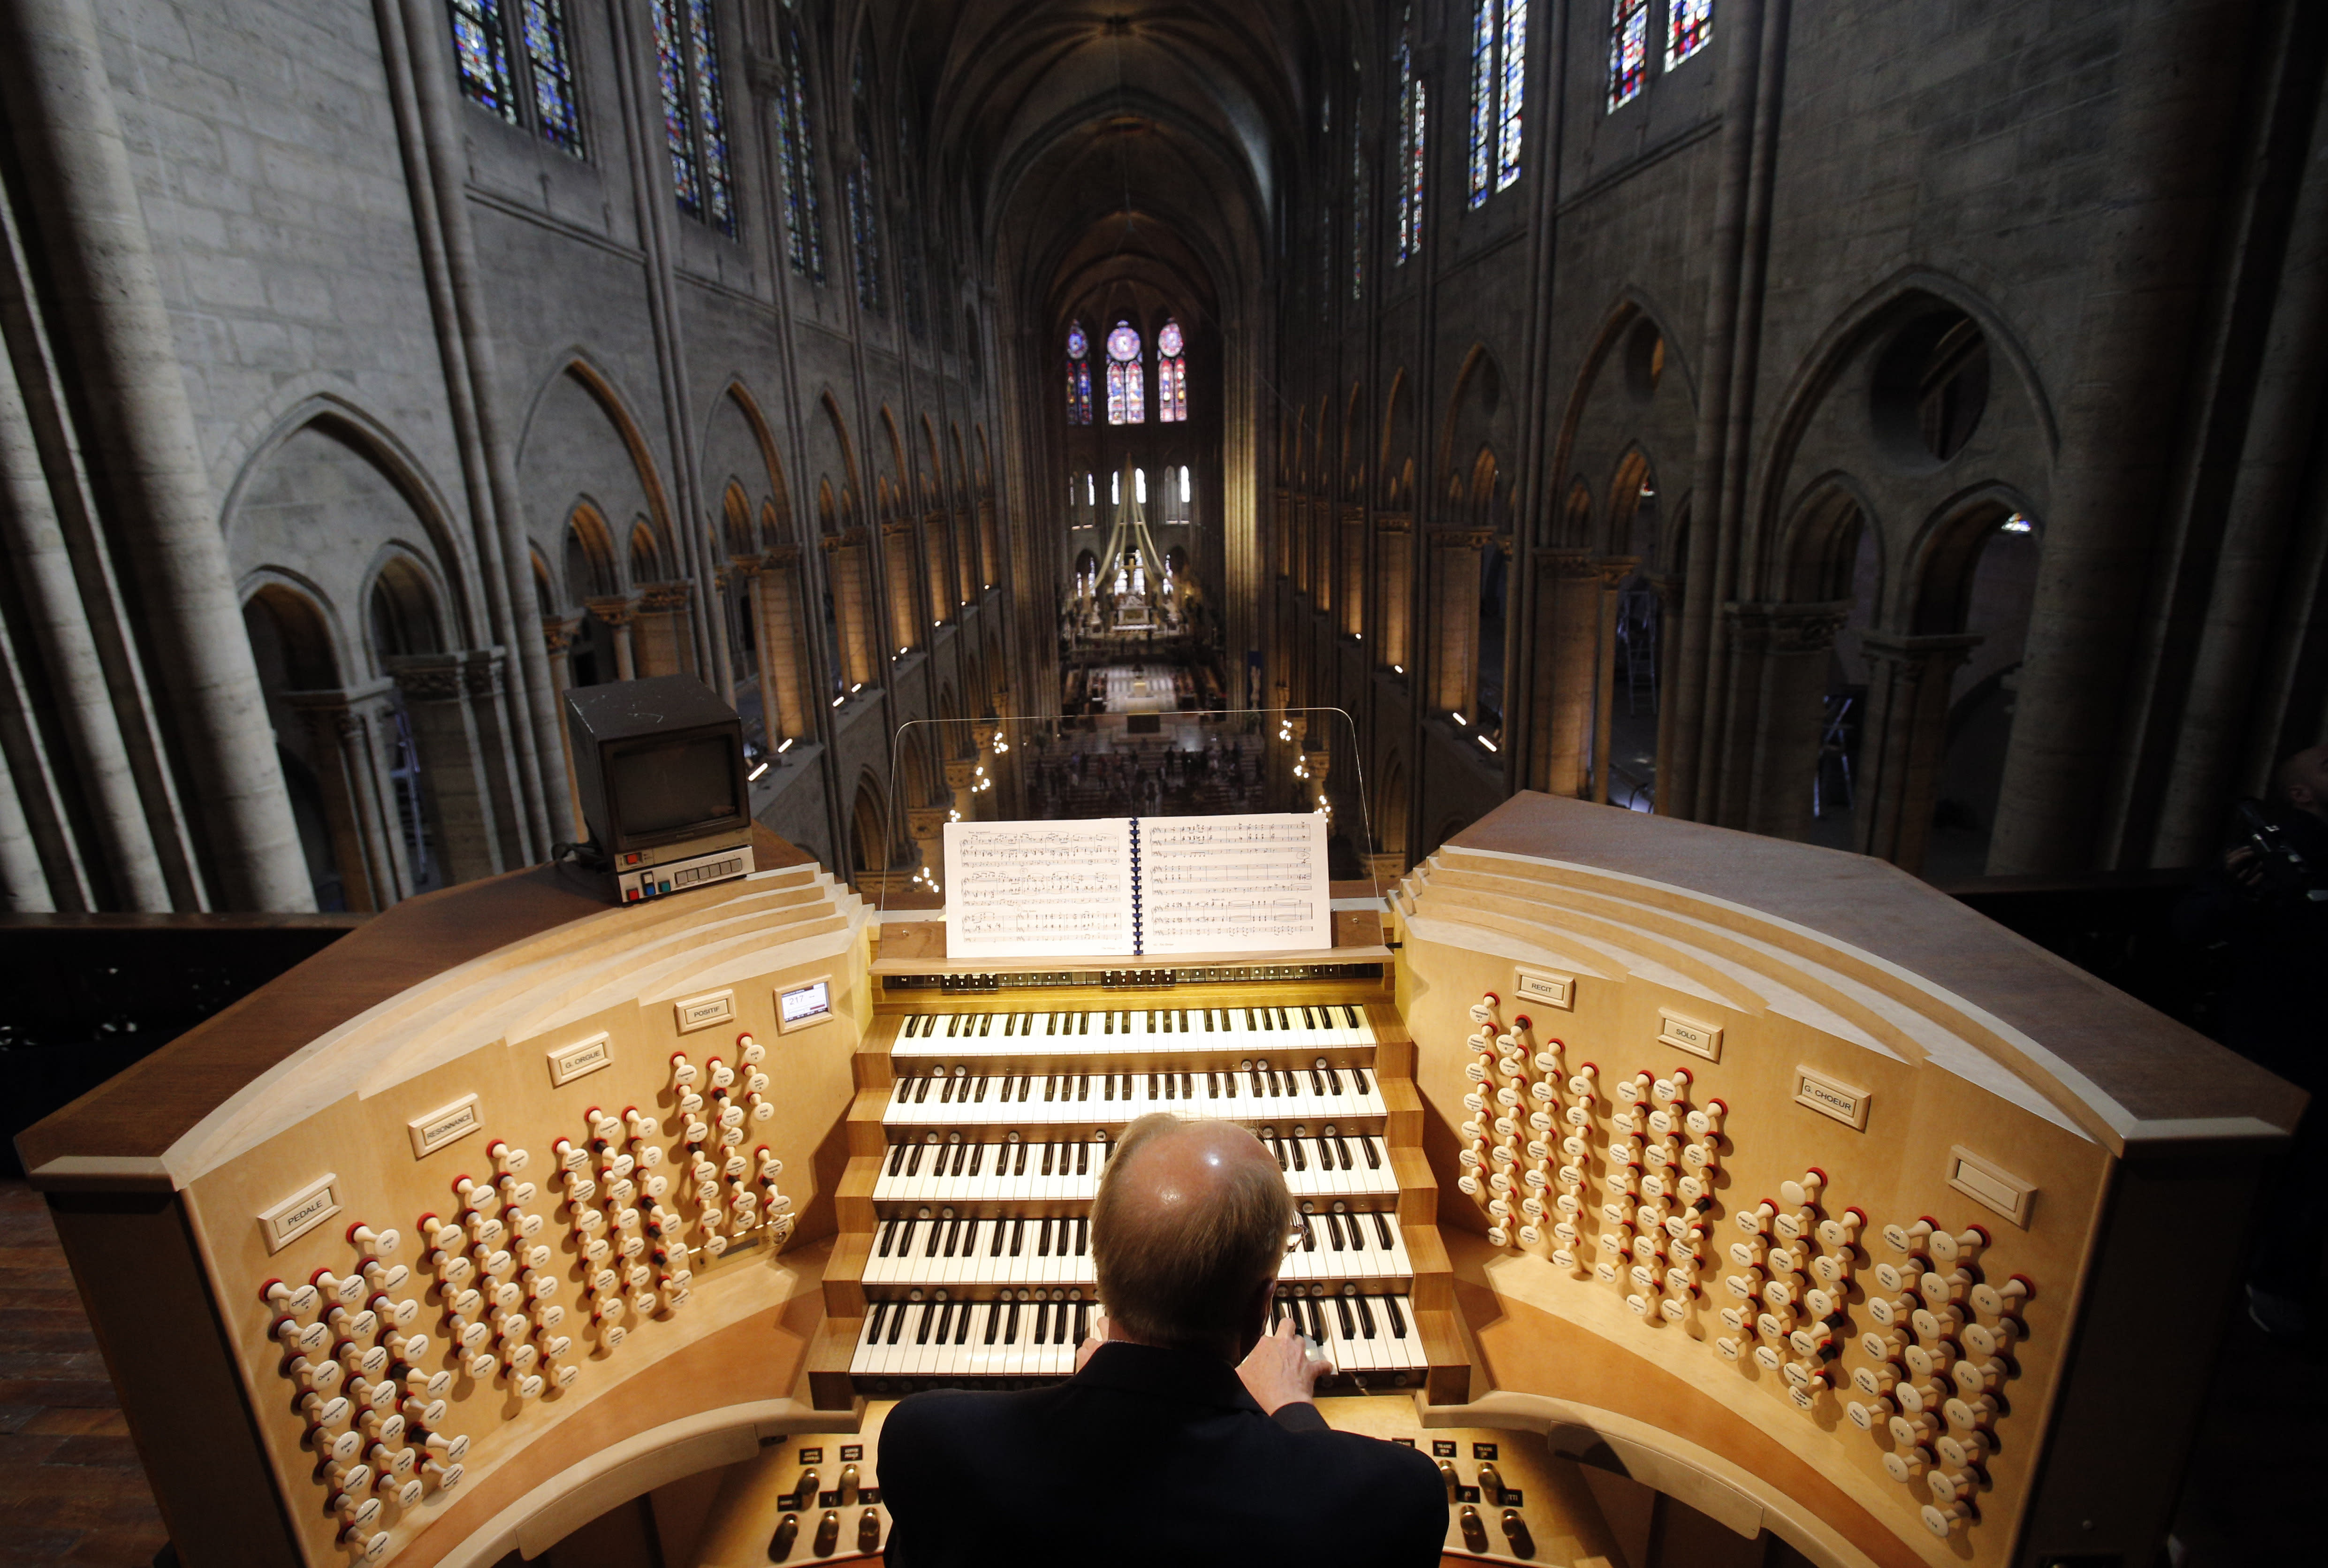 FILE - In this Thursday, May 2, 2013 file photo, Philippe Lefebvre, 64, plays the organ at Notre Dame cathedral in Paris. (AP Photo/Christophe Ena, file)